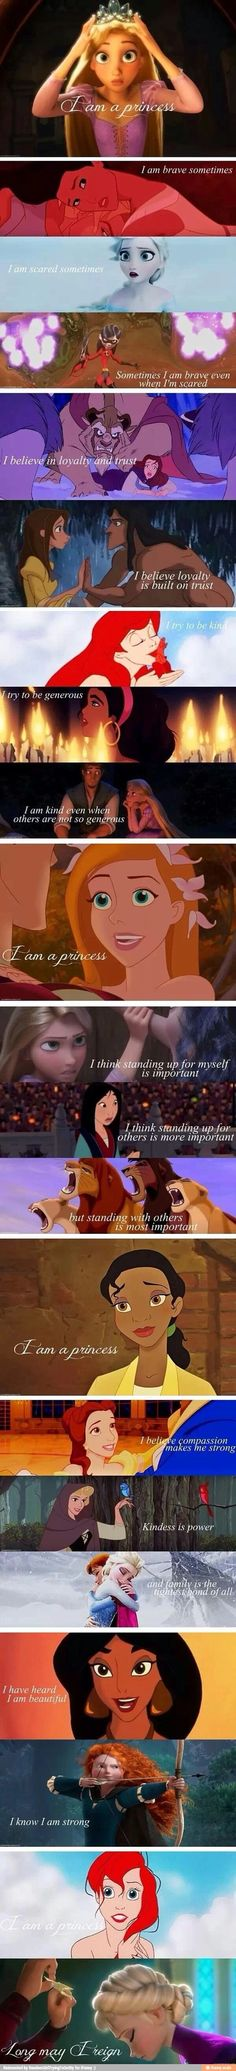 I am a princess - this is adorable